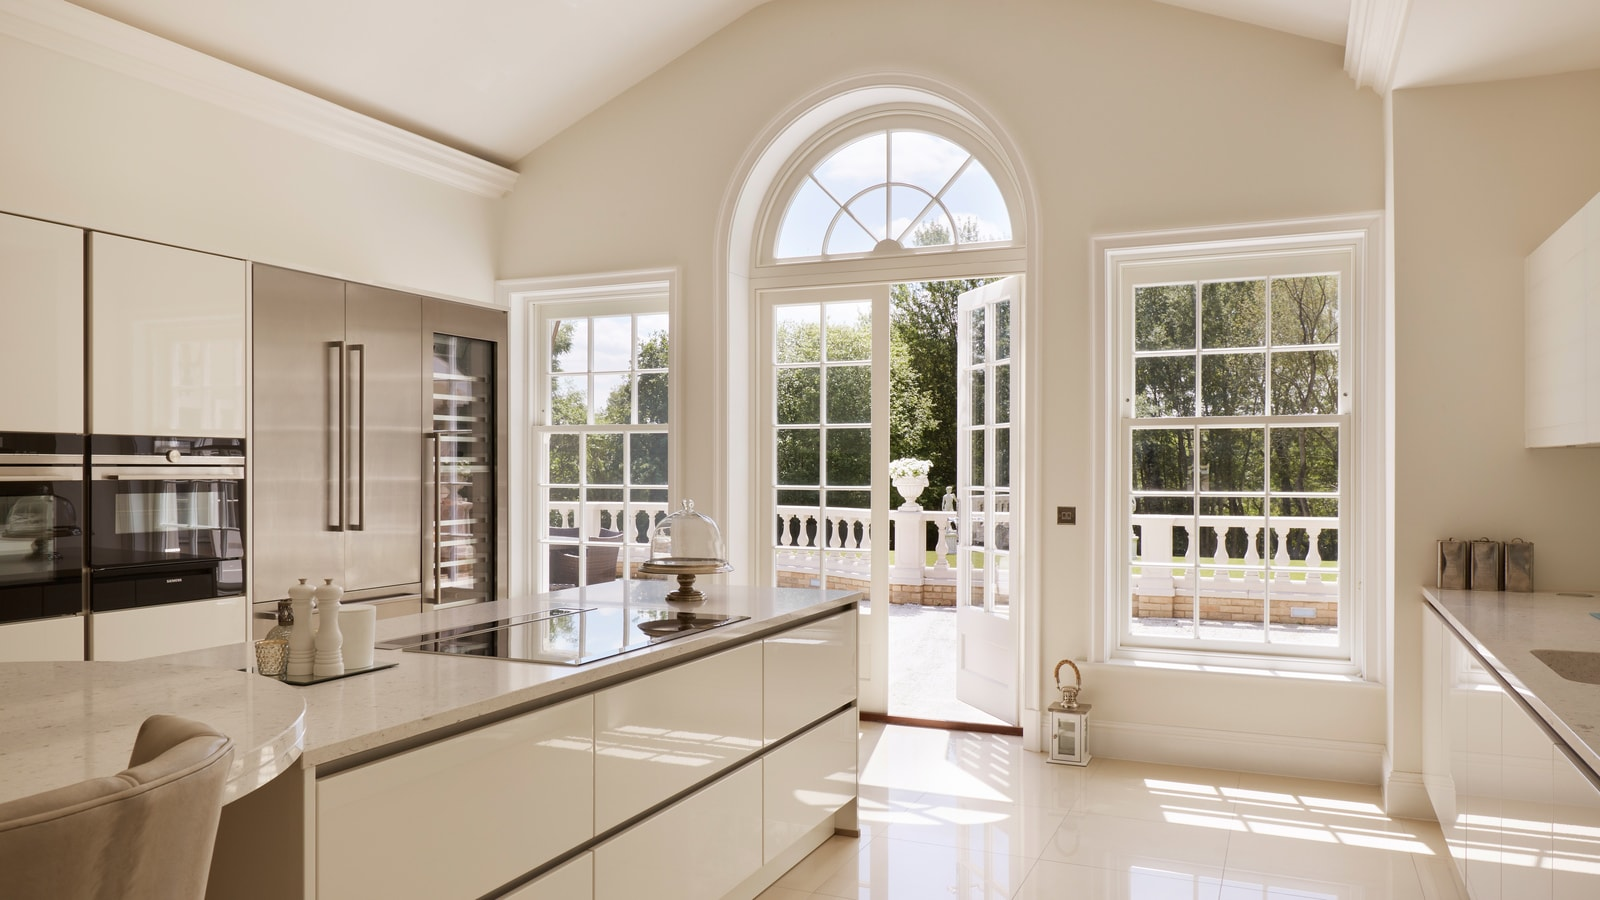 Kitchen area with mixture of French doors & sash windows